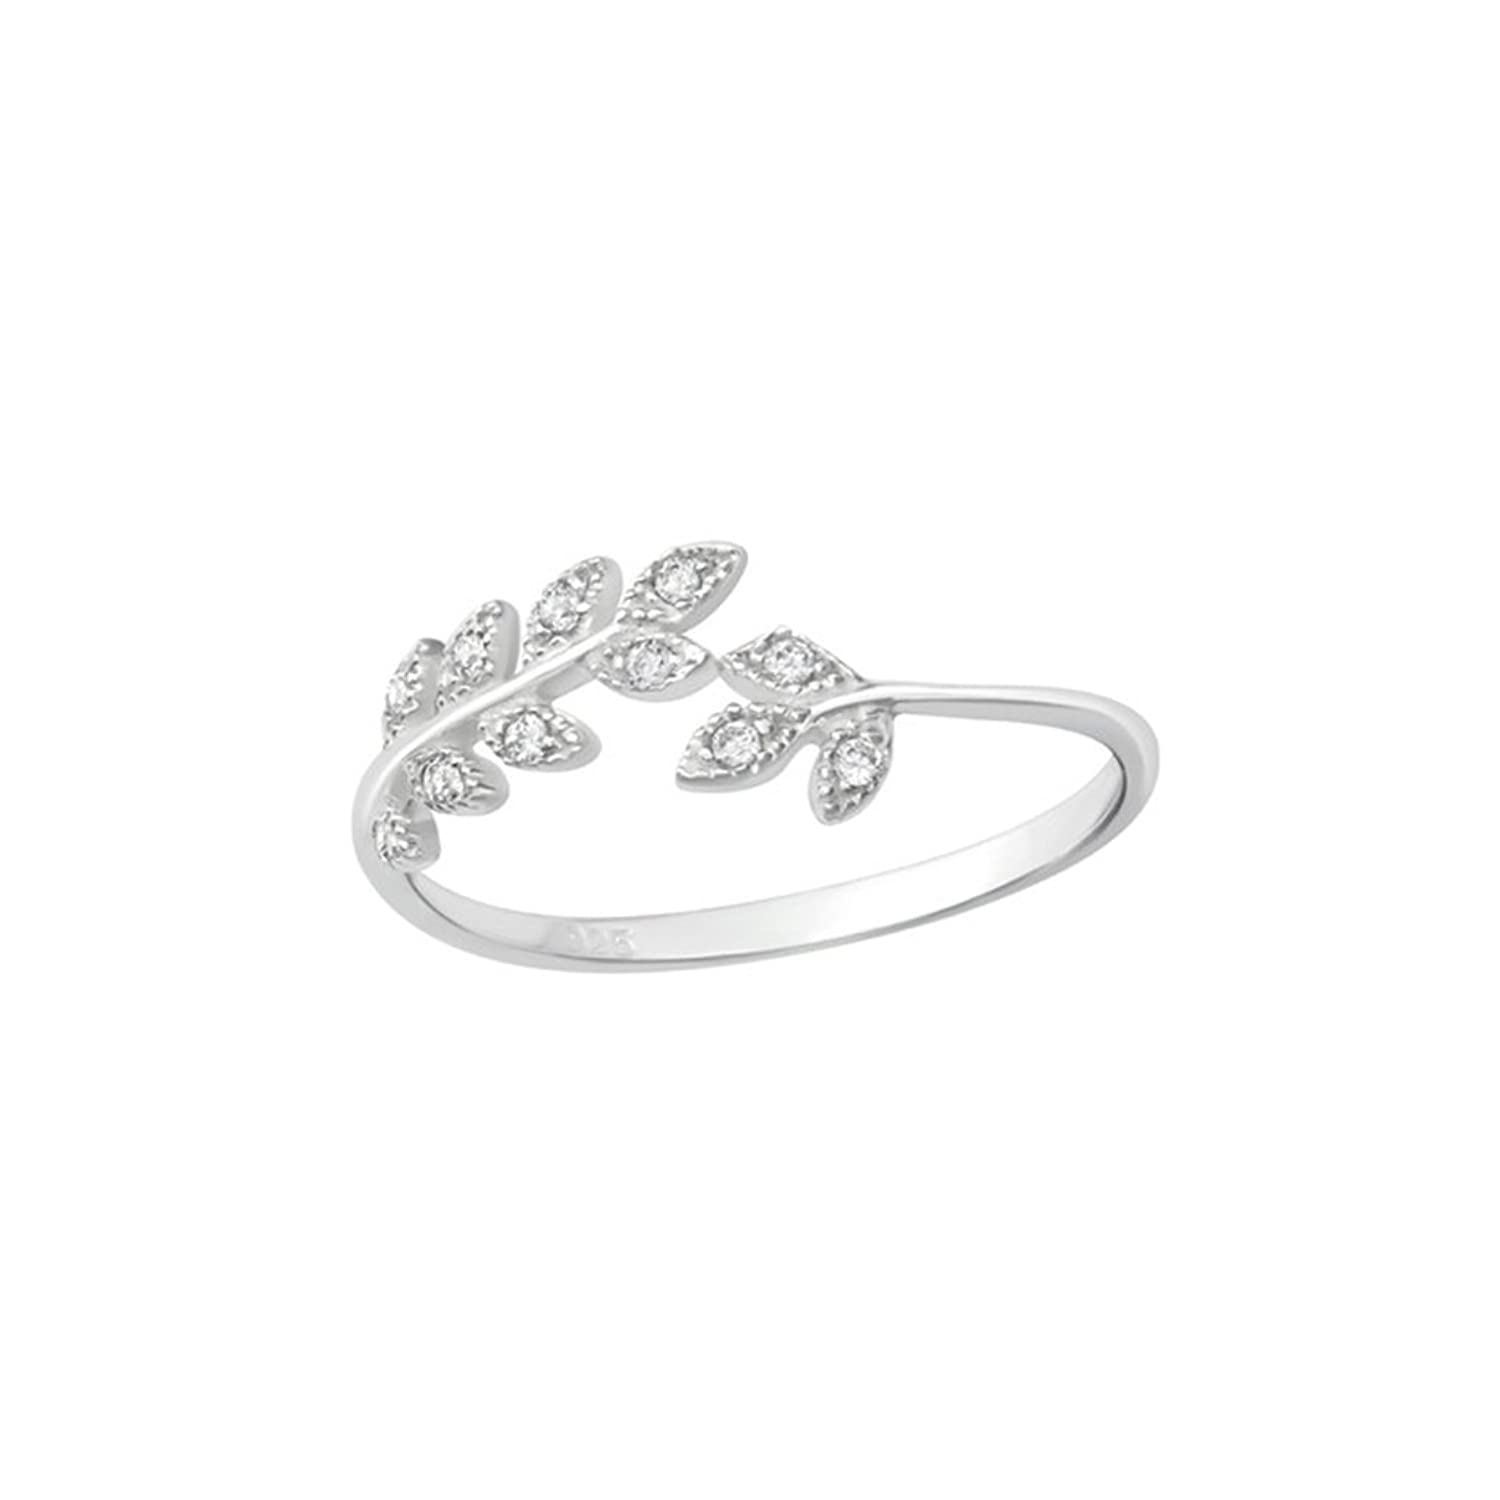 Polished and Nickel Free Liara Heart Jeweled Rings 925 Sterling Silver